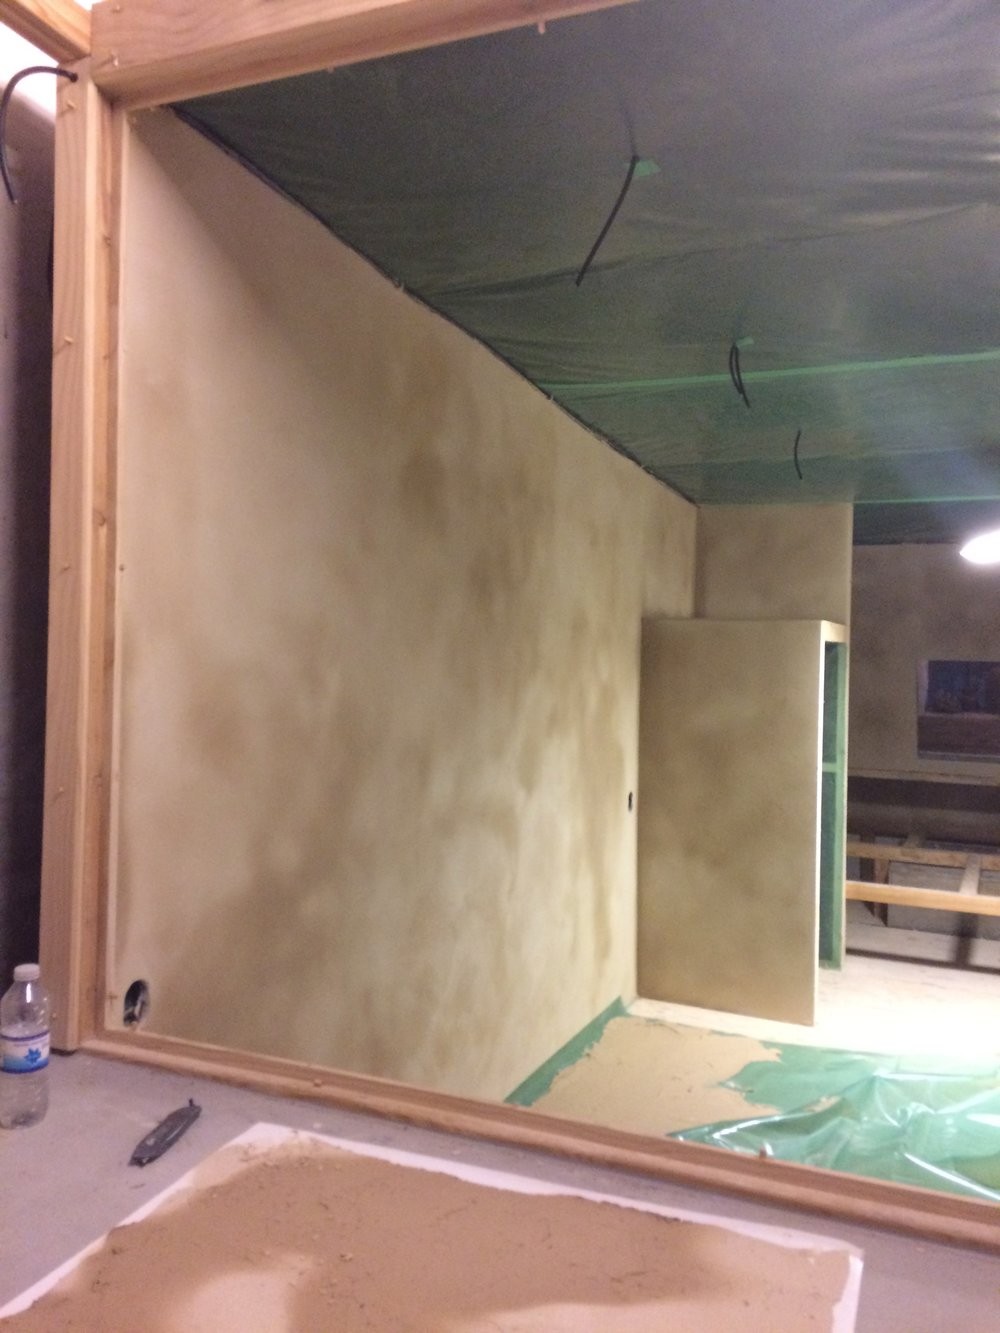 The clay plastered walls are slowly drying up